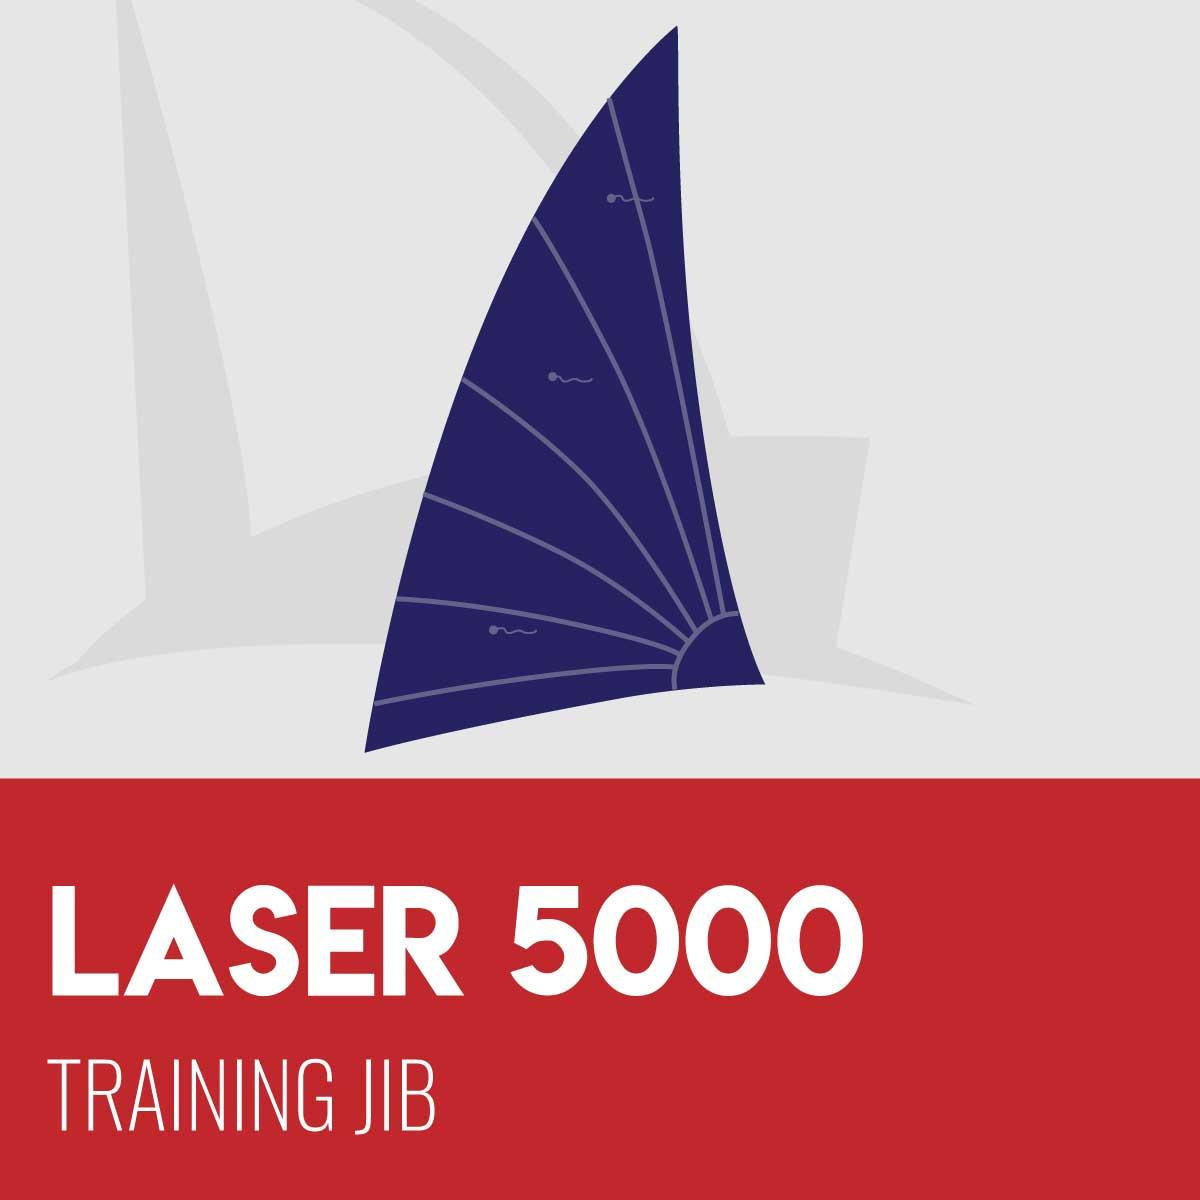 Laser 5000 Training Jib